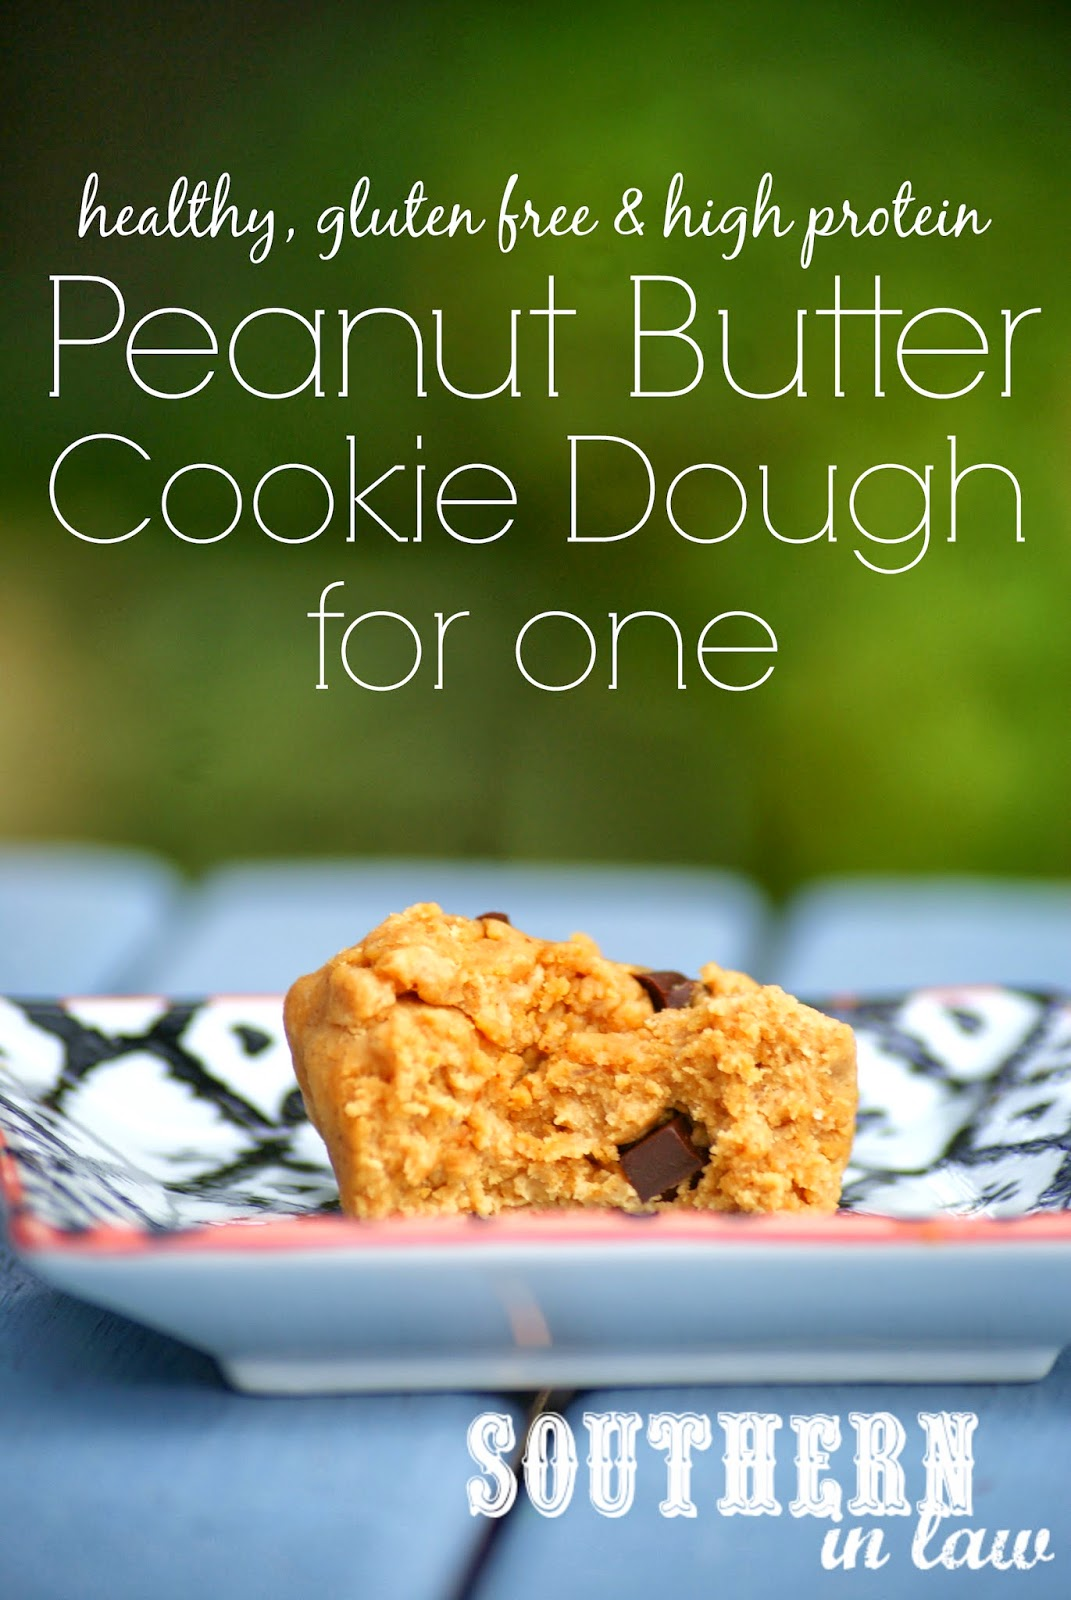 Healthy Peanut Butter Cookie Dough for One - Single Serving Protein Cookie Dough - Gluten Free, Low Fat, Clean Eating Friendly, Grain Free, Sugar Free, Vegan